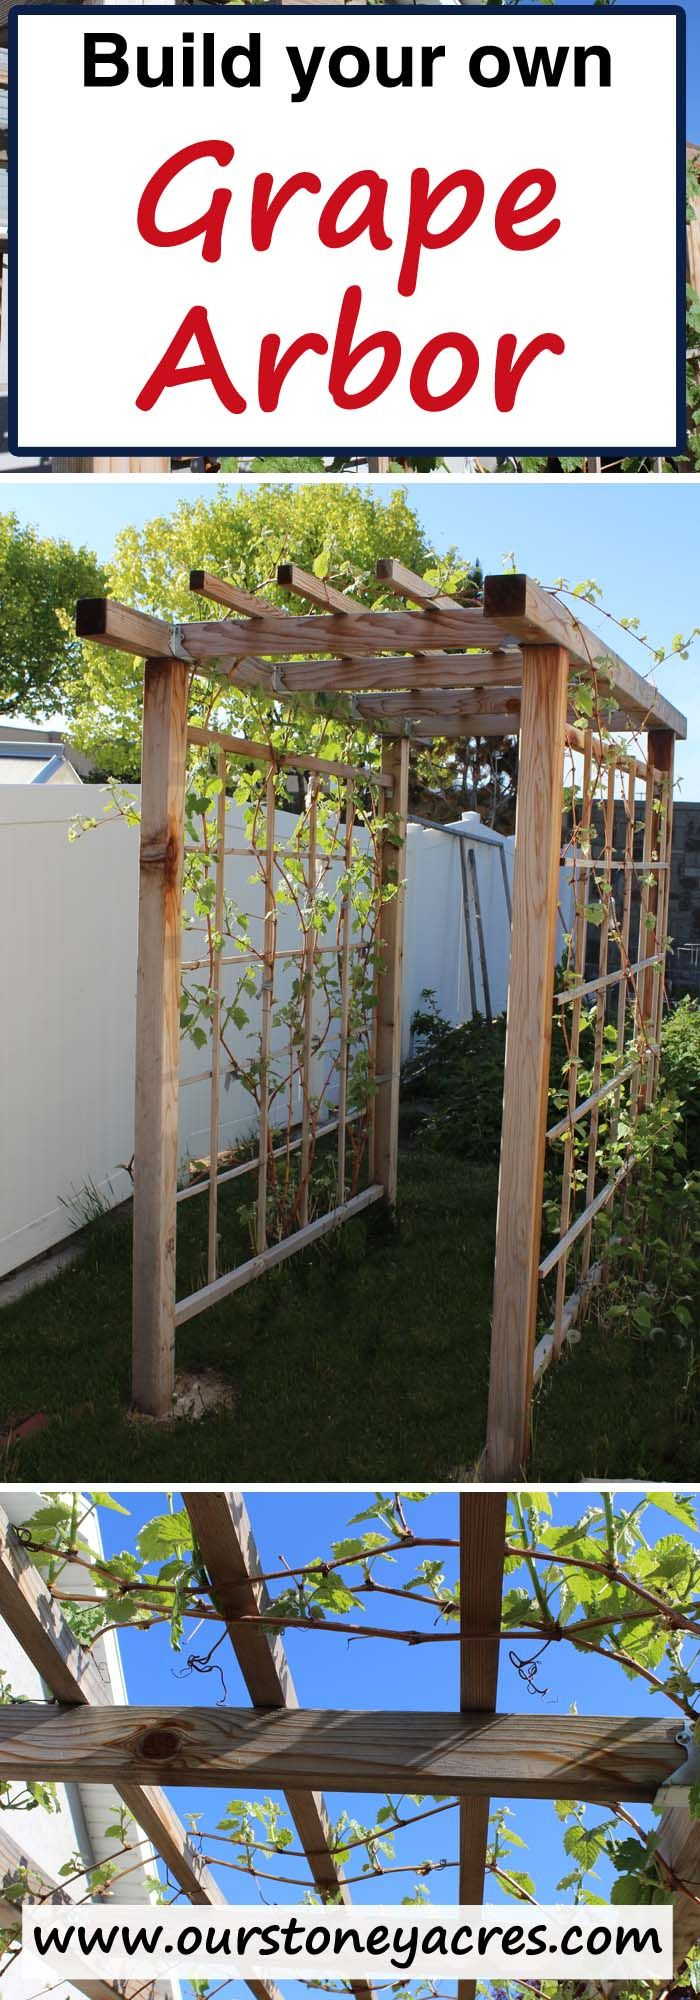 Building a Grape Arbor is a DIY project you can tackle yourself.  Plan on some work, this beauty will take some time and effort but can be built in a weekend if you get started Friday night!